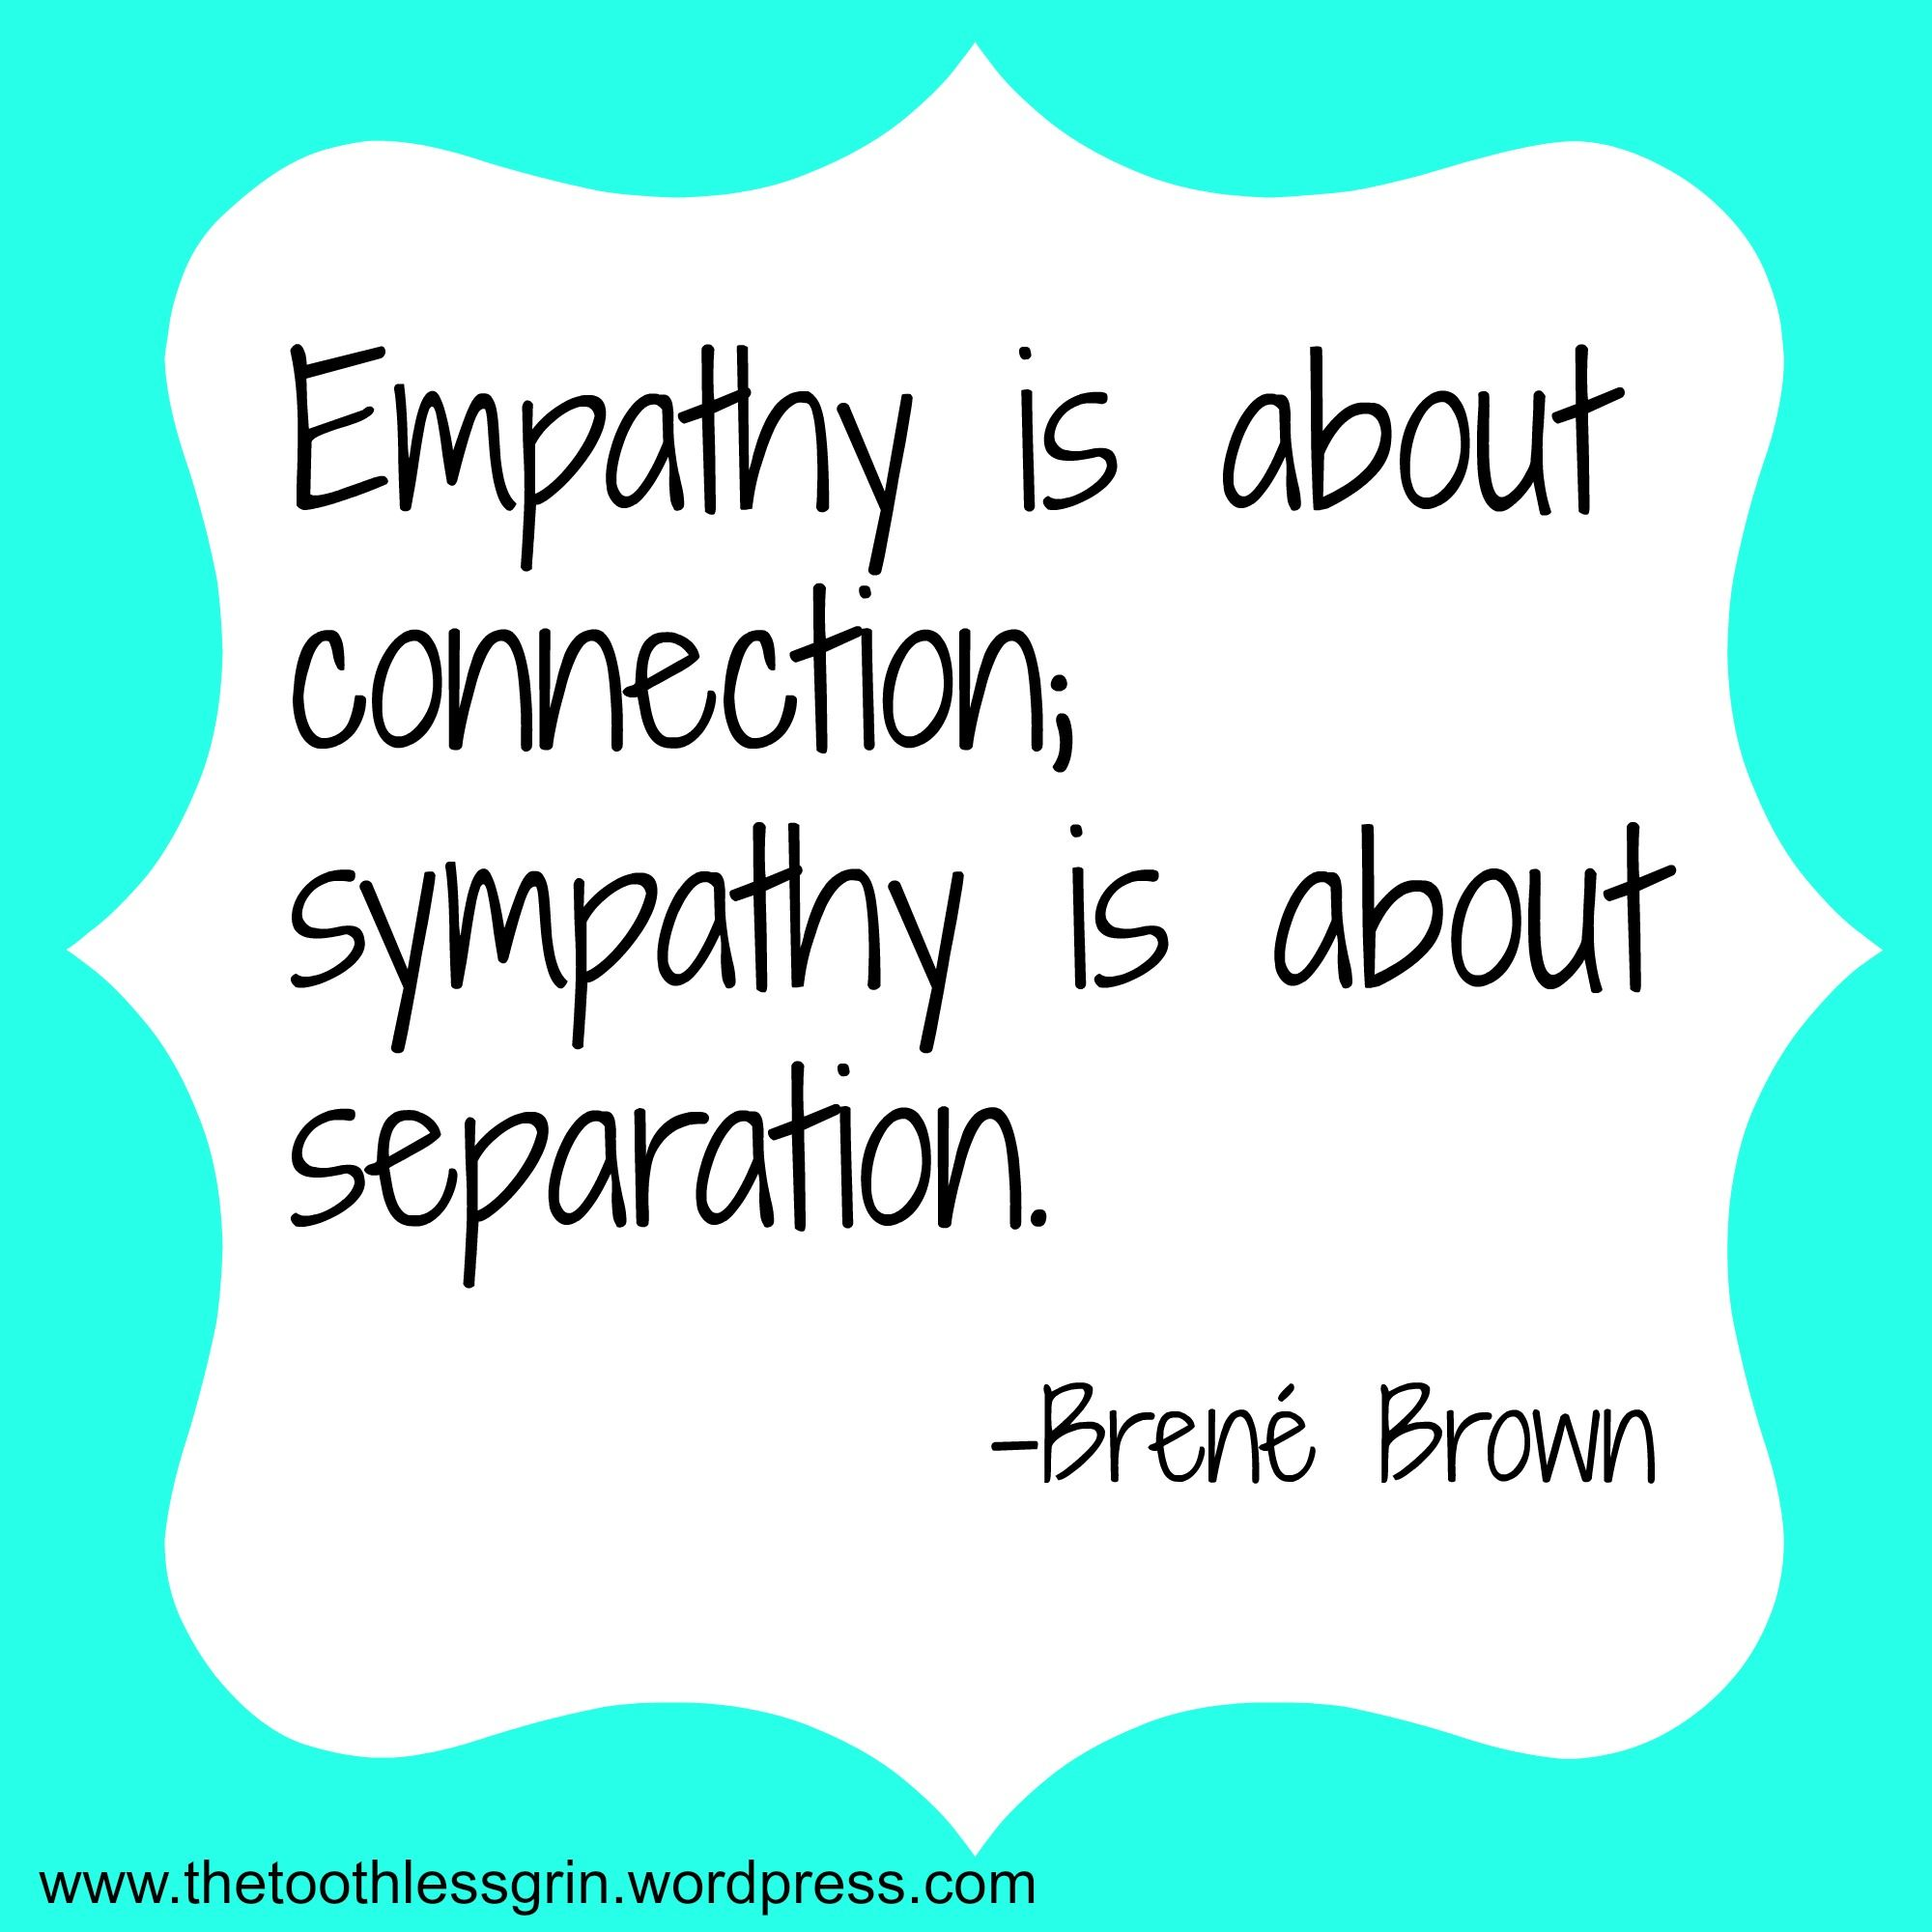 Why Sympathy Spurs Shame, but Empathy Empowers